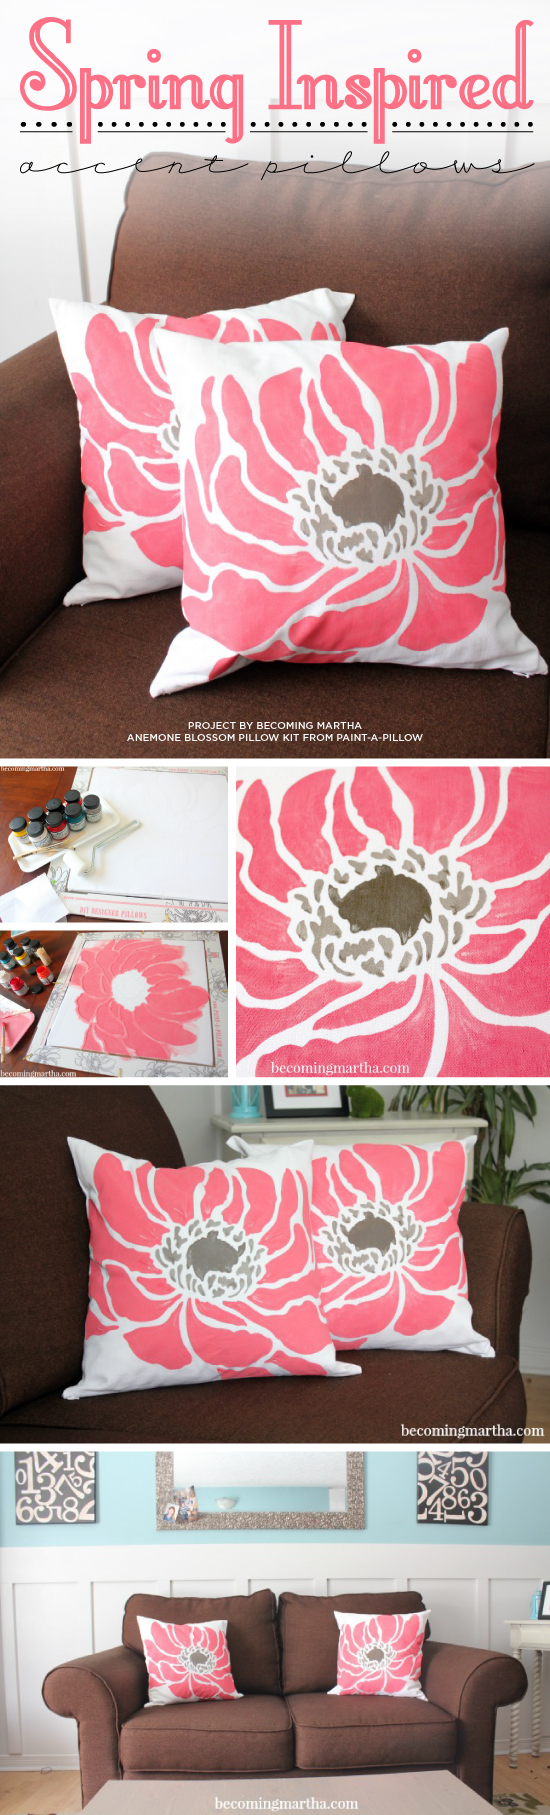 Cutting Edge Stencils shares DIY spring inspired painted pillow using the Anemone Blossom stencil from Paint-A-Pillow. http://paintapillow.com/index.php/anemone-blossom-paint-a-pillow-kit.html